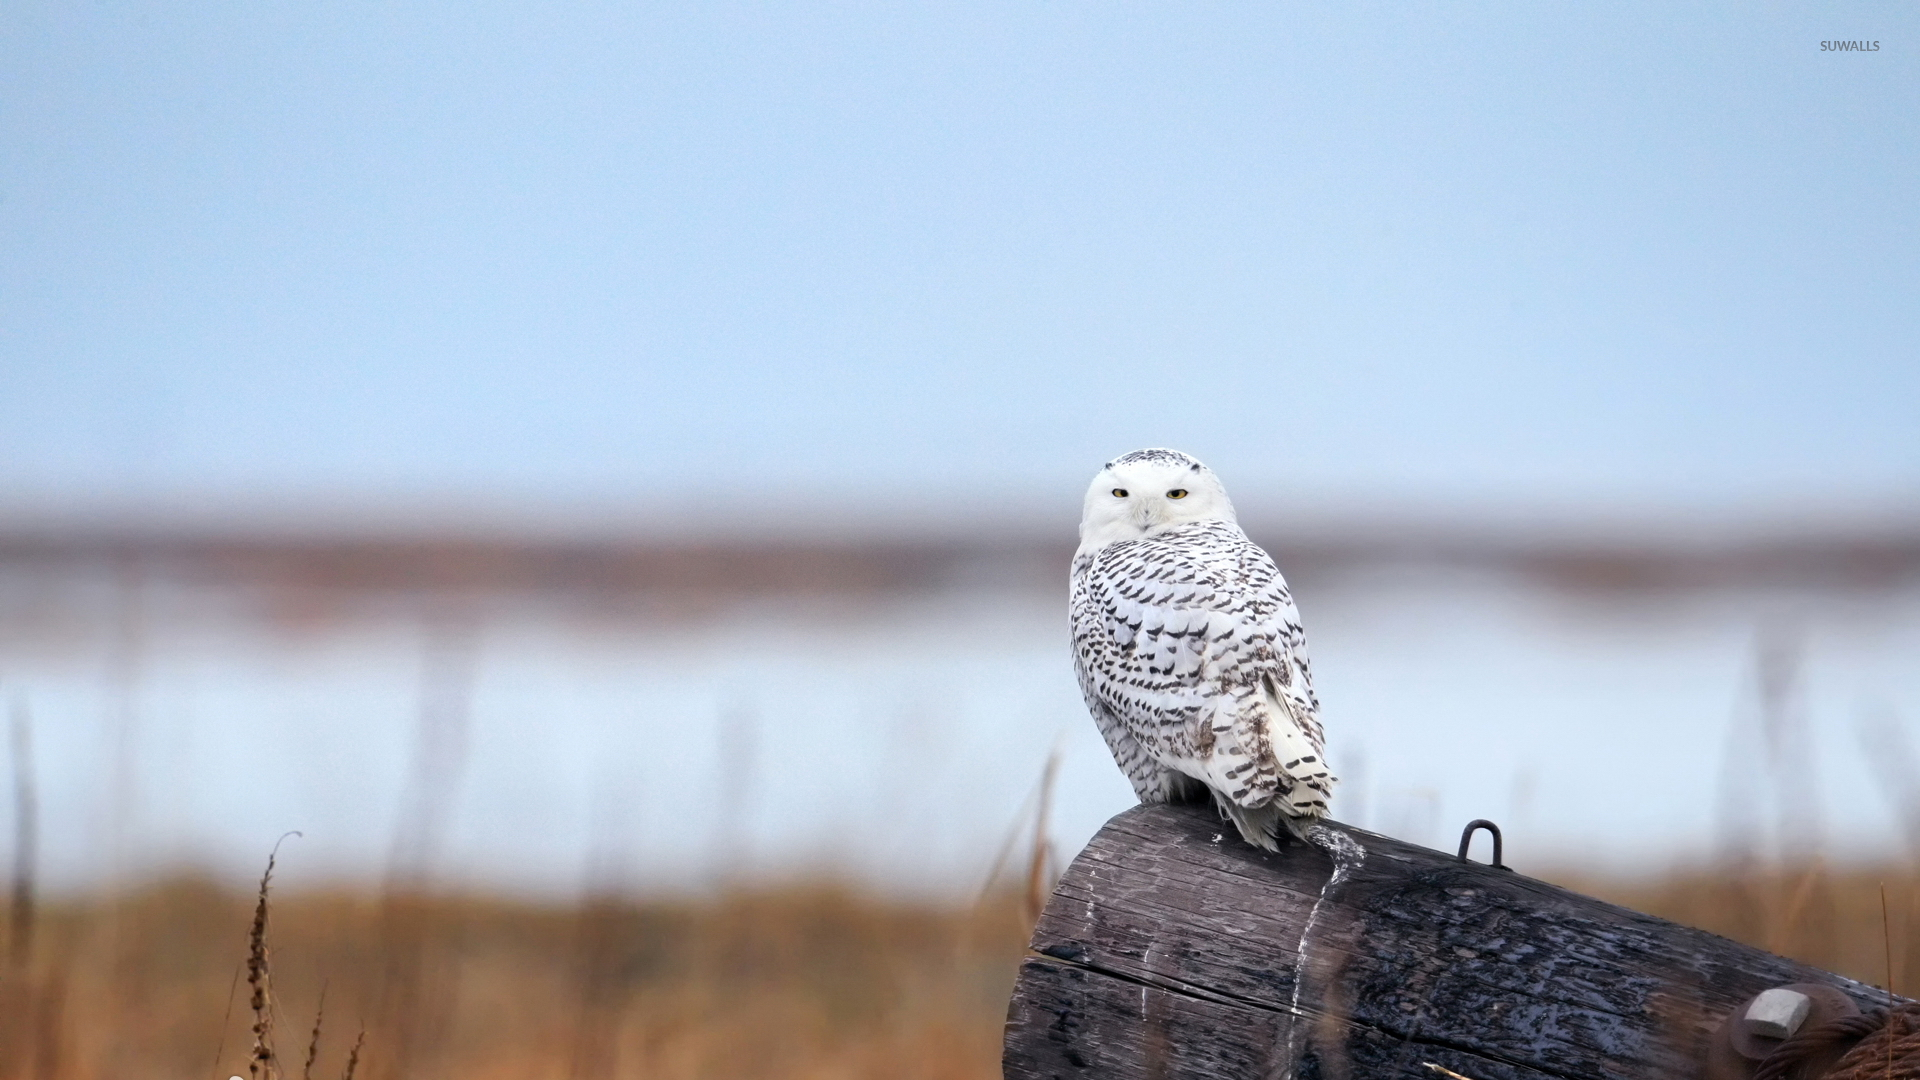 Snowy Owl 9 Wallpaper Animal Wallpapers 42054